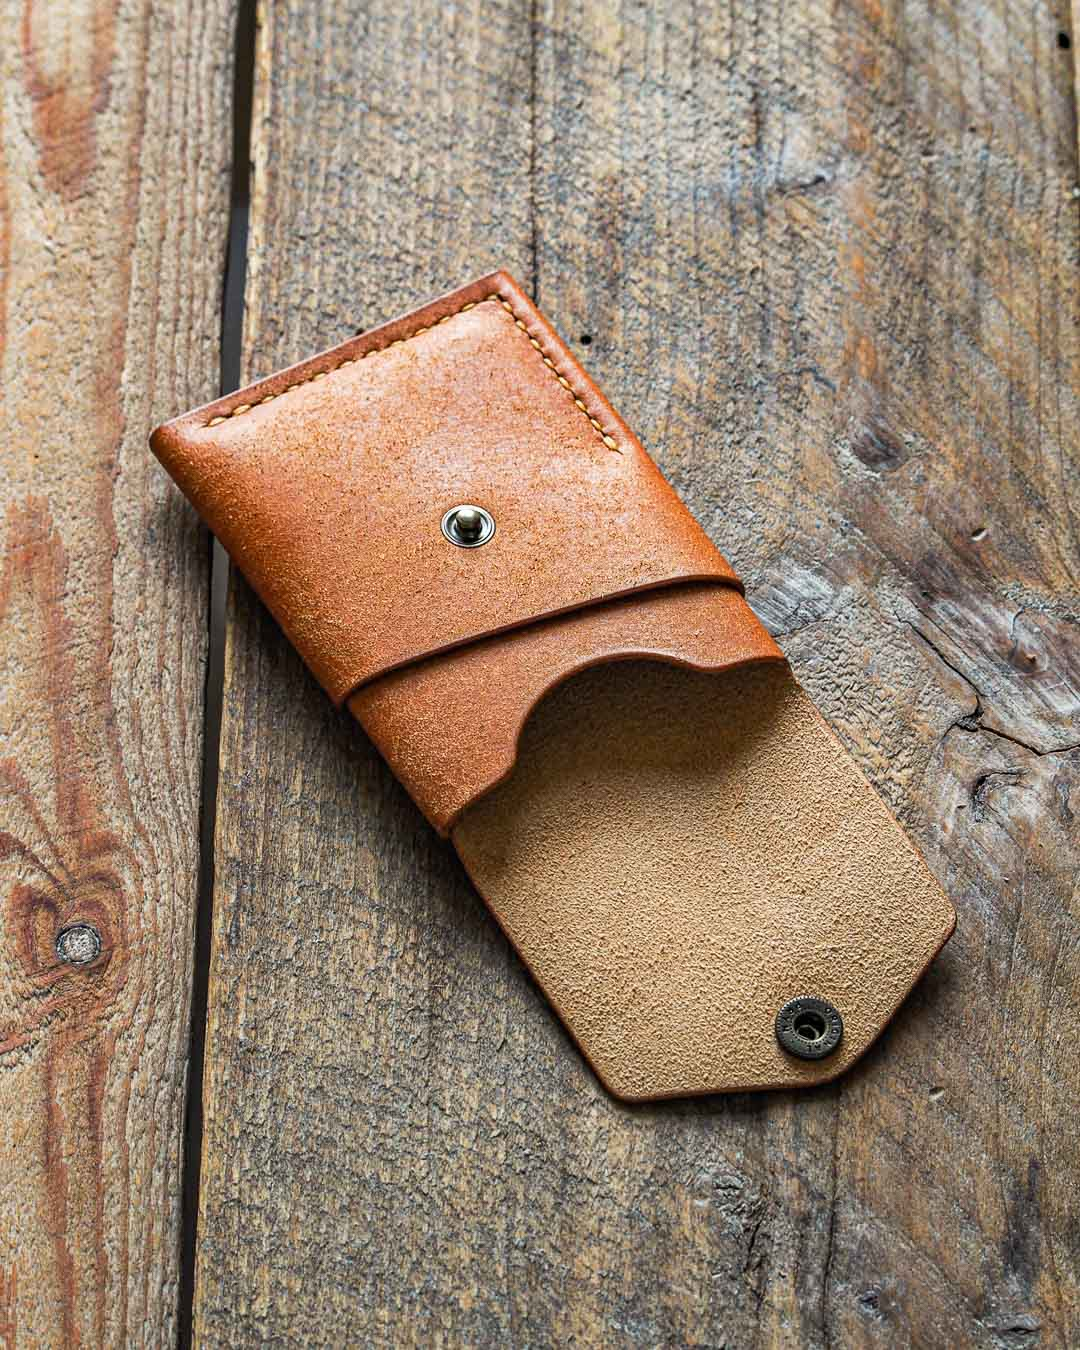 Luava handmade leather wallet handcrafted card holder cardholder made in finland overfold badalassi carlo pueblo cognac front open angle